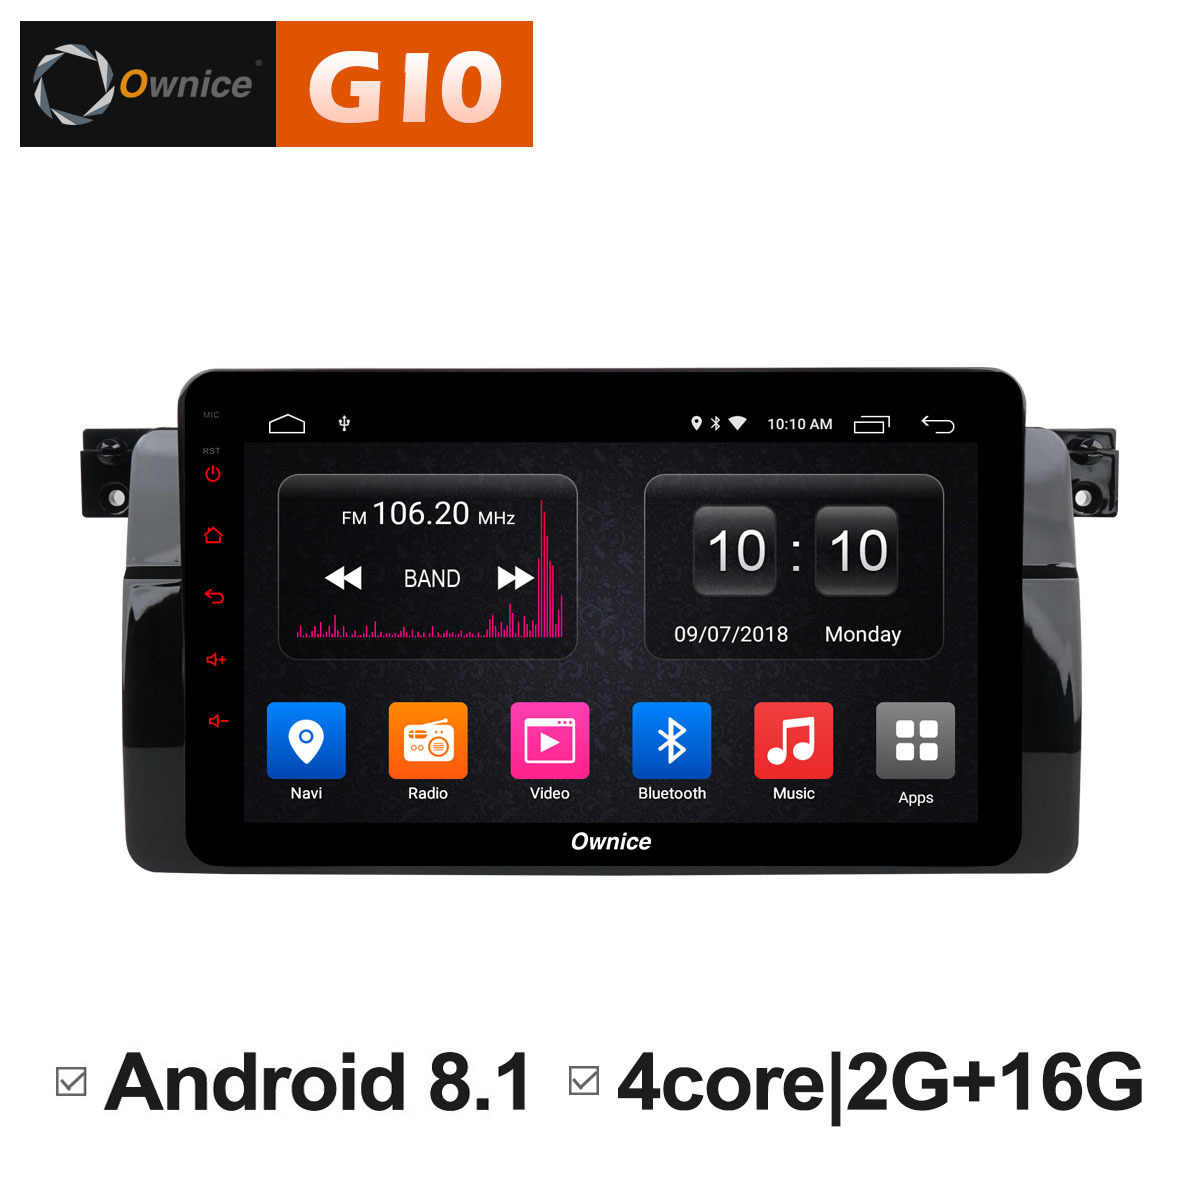 Ownice C500 + G10 Octa Core Android 8.1 auto dvd voor bmw E46 M3 gps navigatie canbus radio RDS 2g + 32g 1024x600 obd 4G LTE carplay